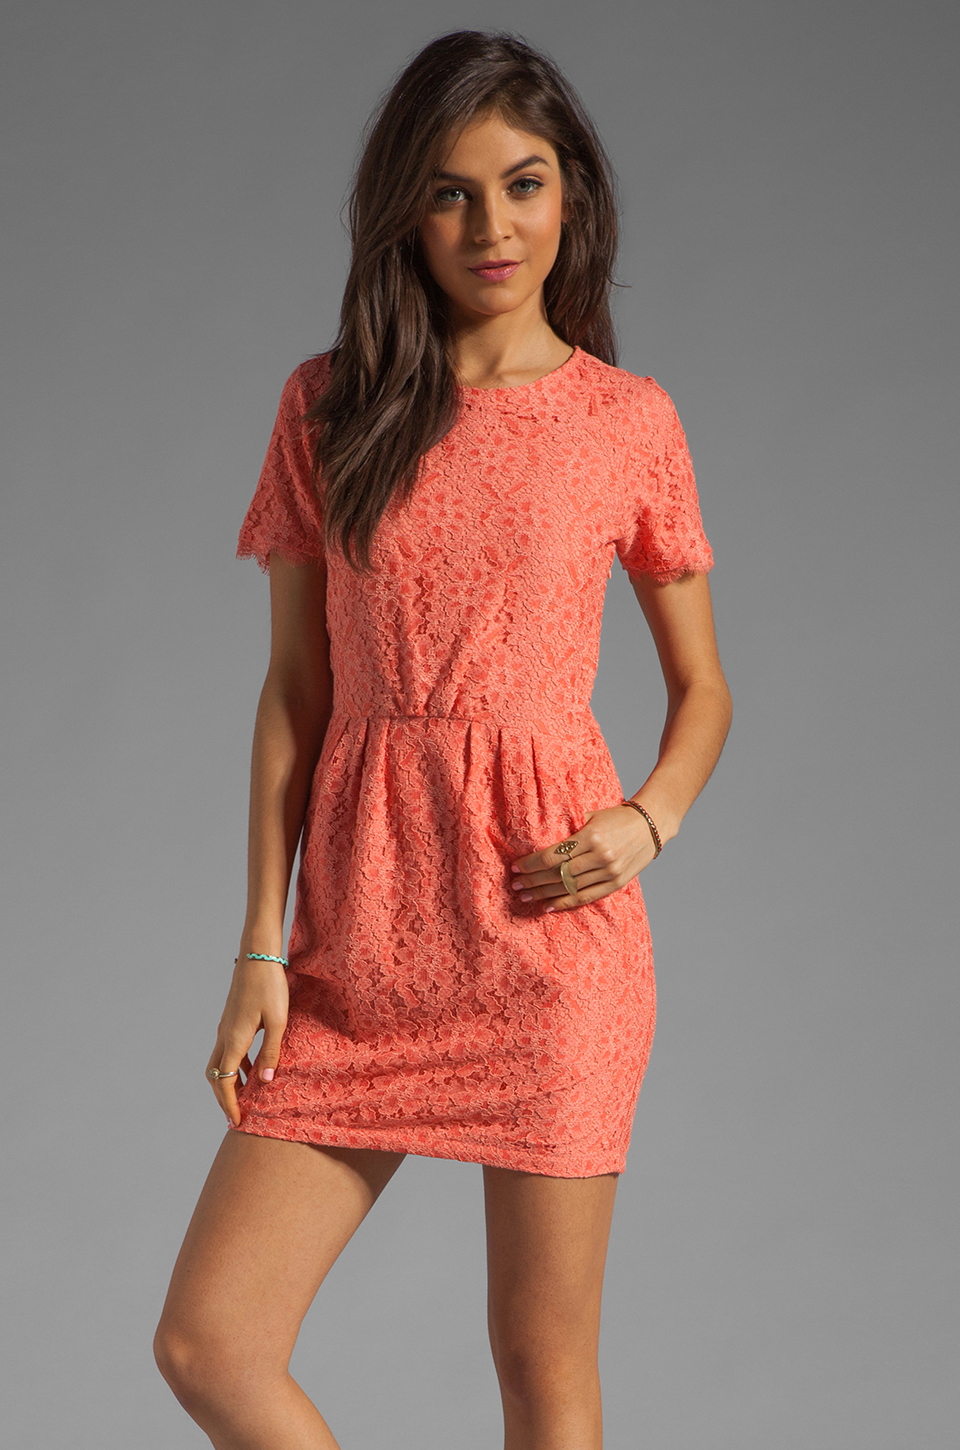 Dolce Vita Sarus Raised Lace Short Sleeve Dress in Coral